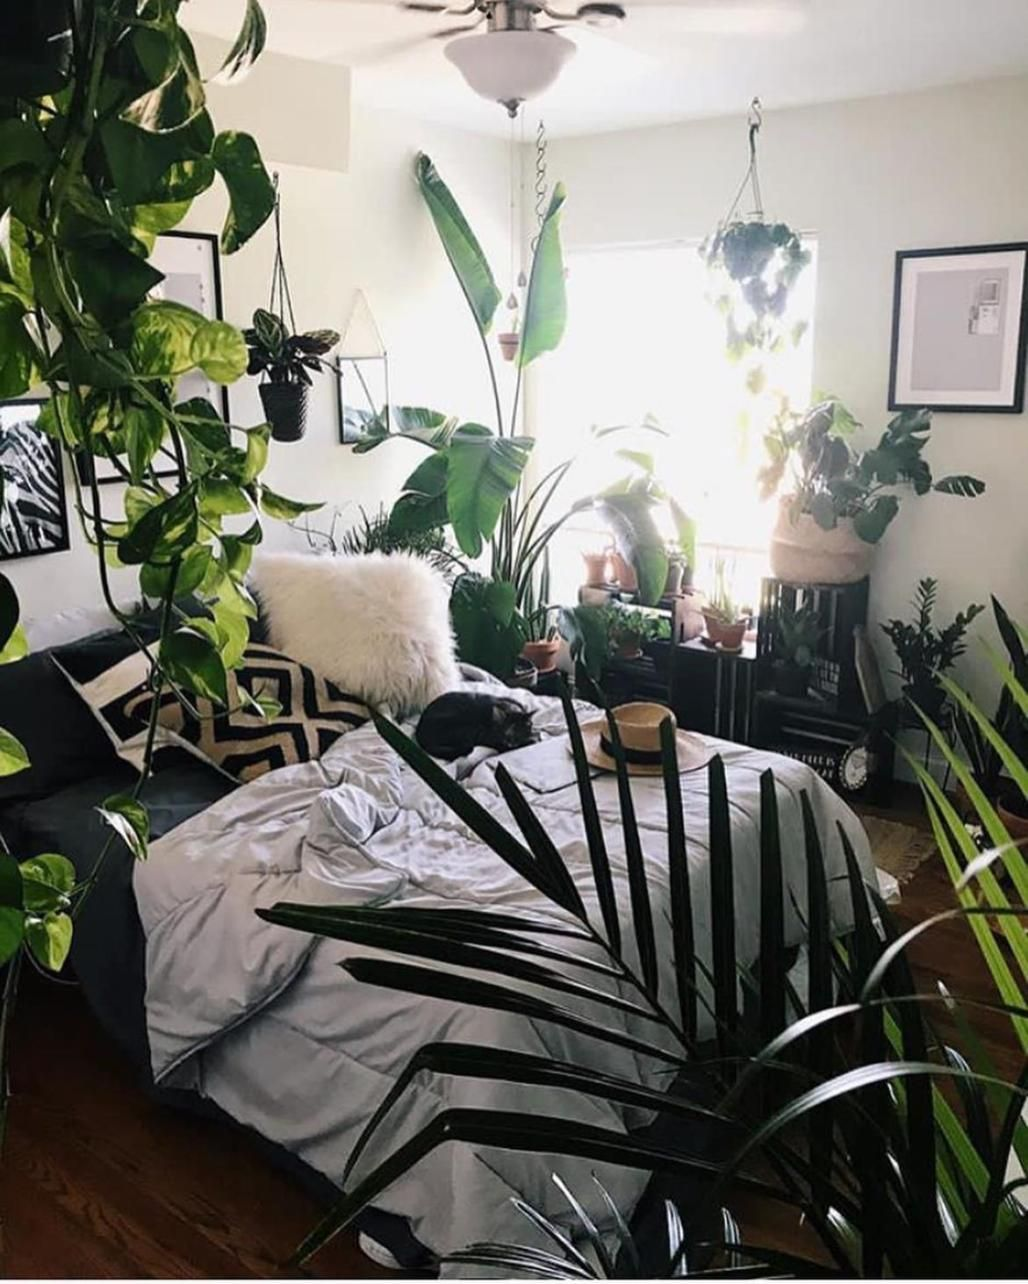 38 Stunning Urban Jungle Room Decor That Will Make Your Home More Cozy Decor Renewal Jungle Room Decor Earthy Home Decor Room Decor Urban jungle bedroom ideas